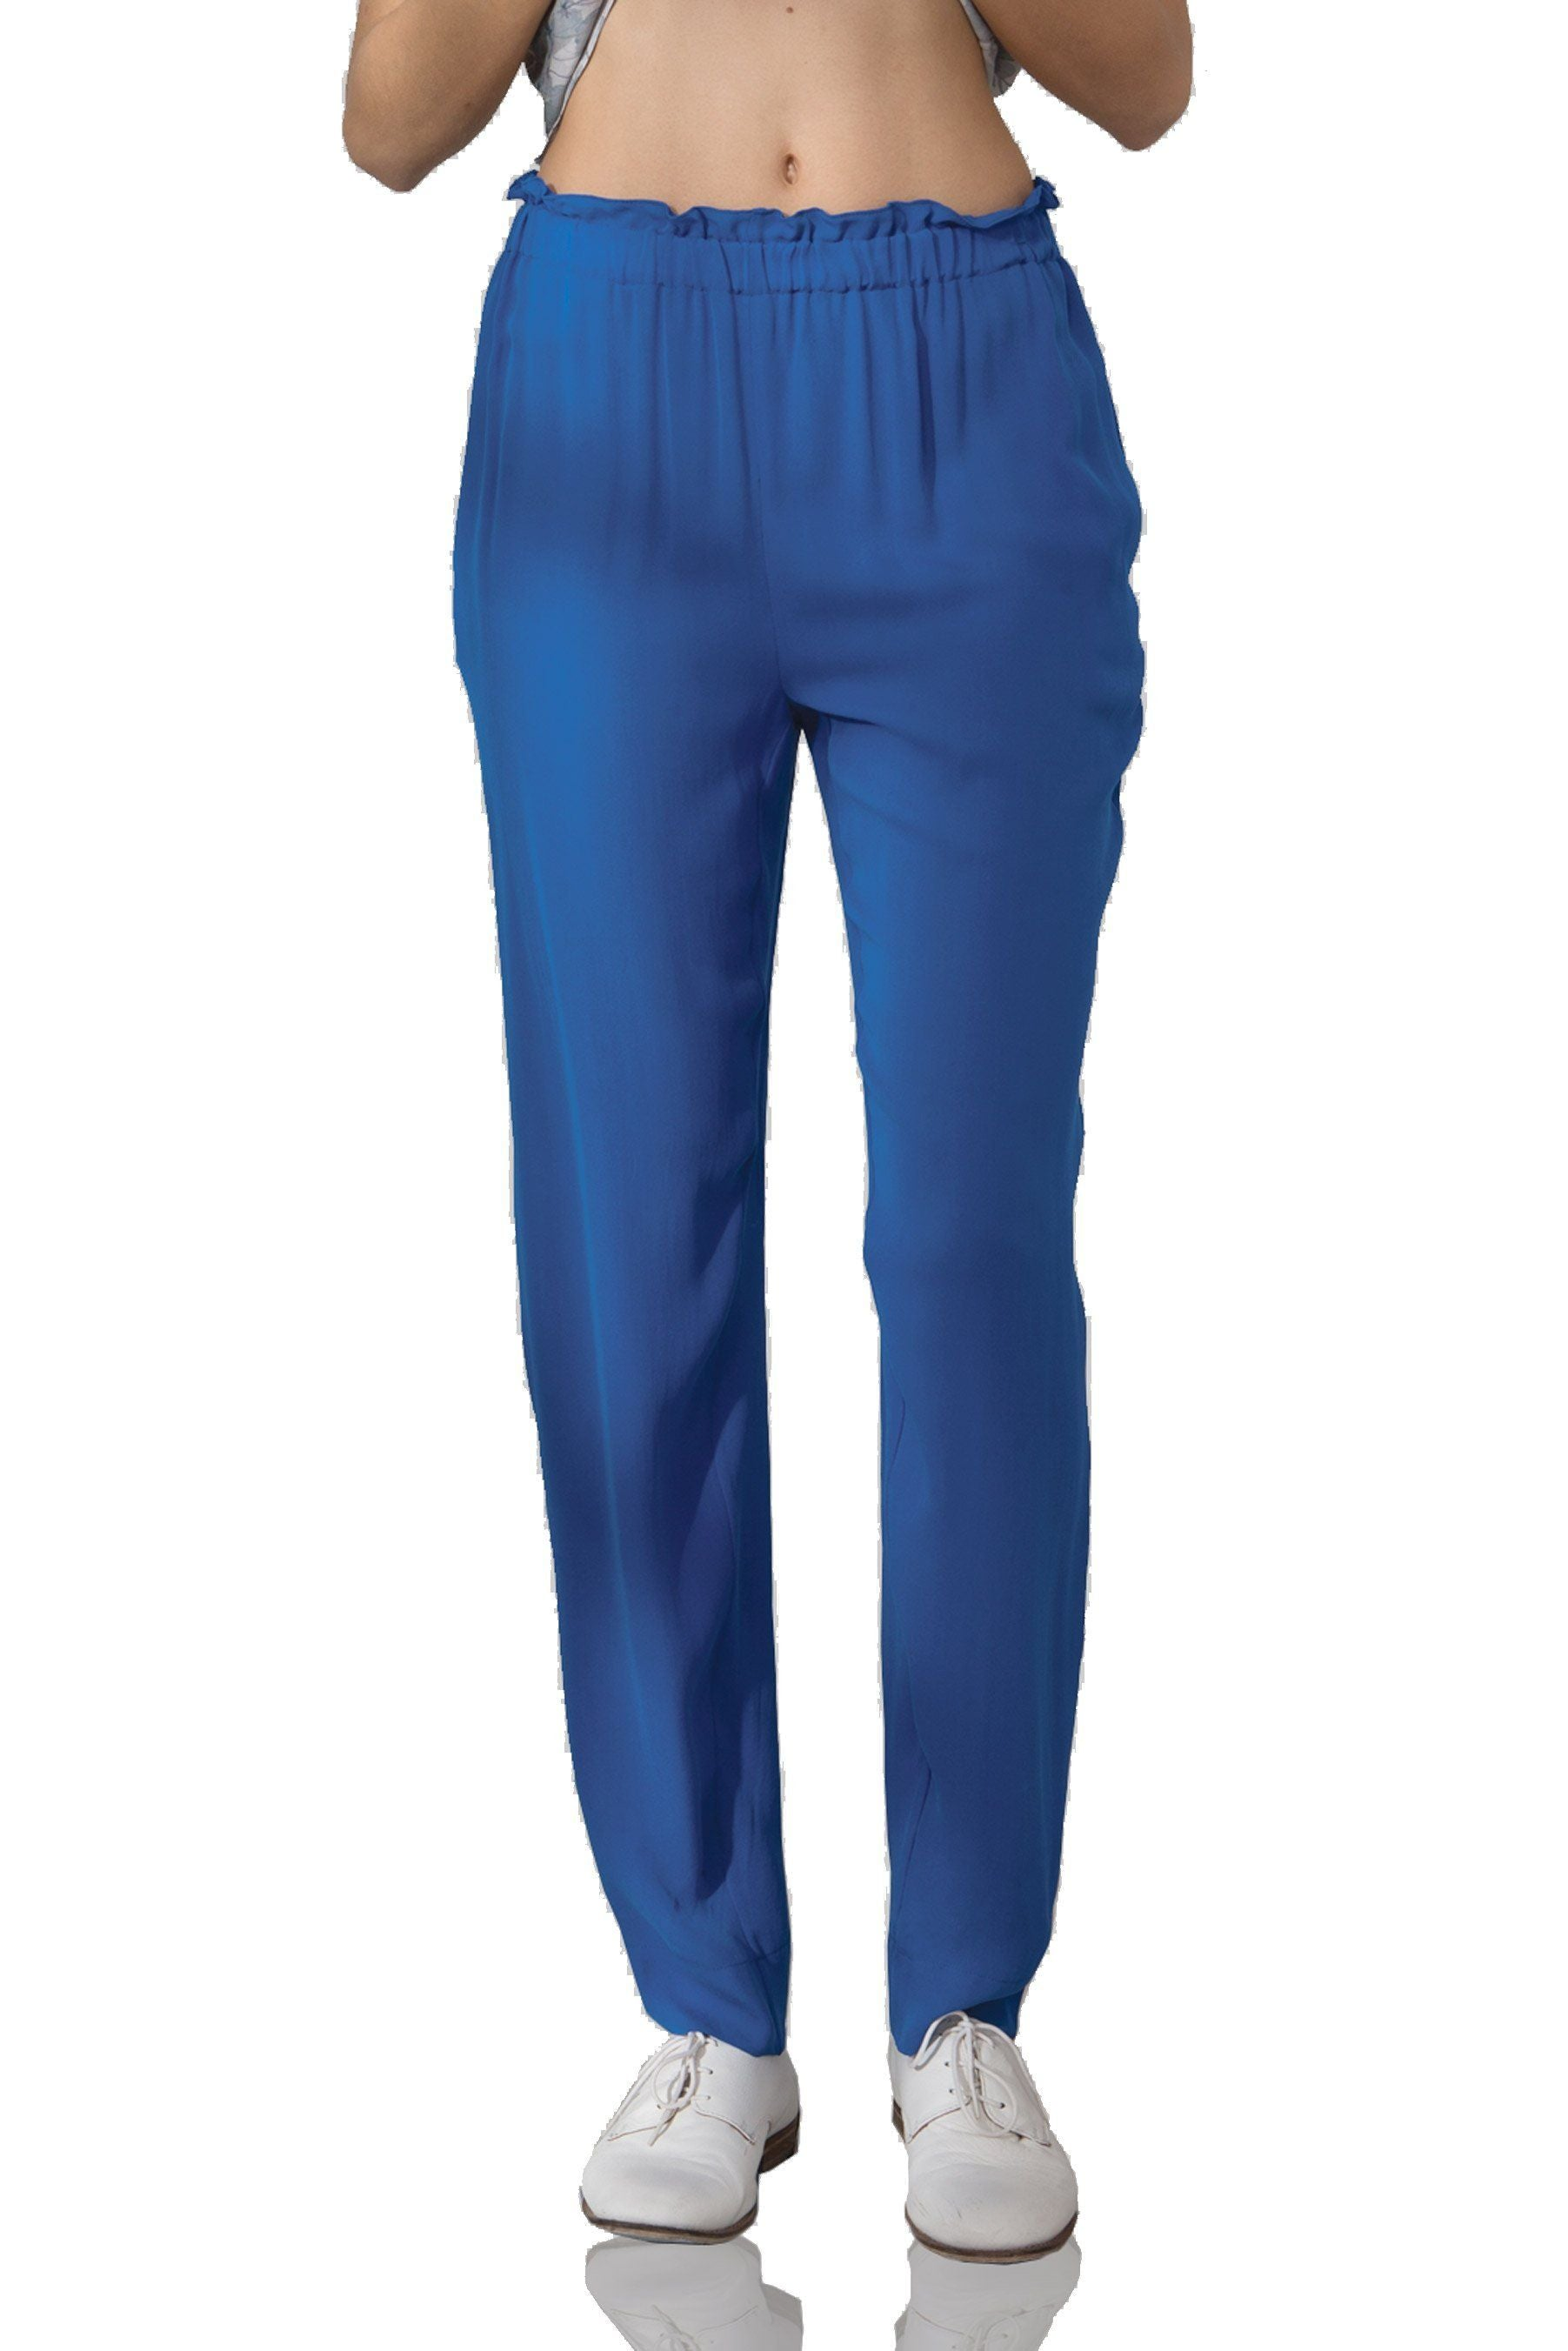 P155 SOLID DBL GGT PANT ROYALTY